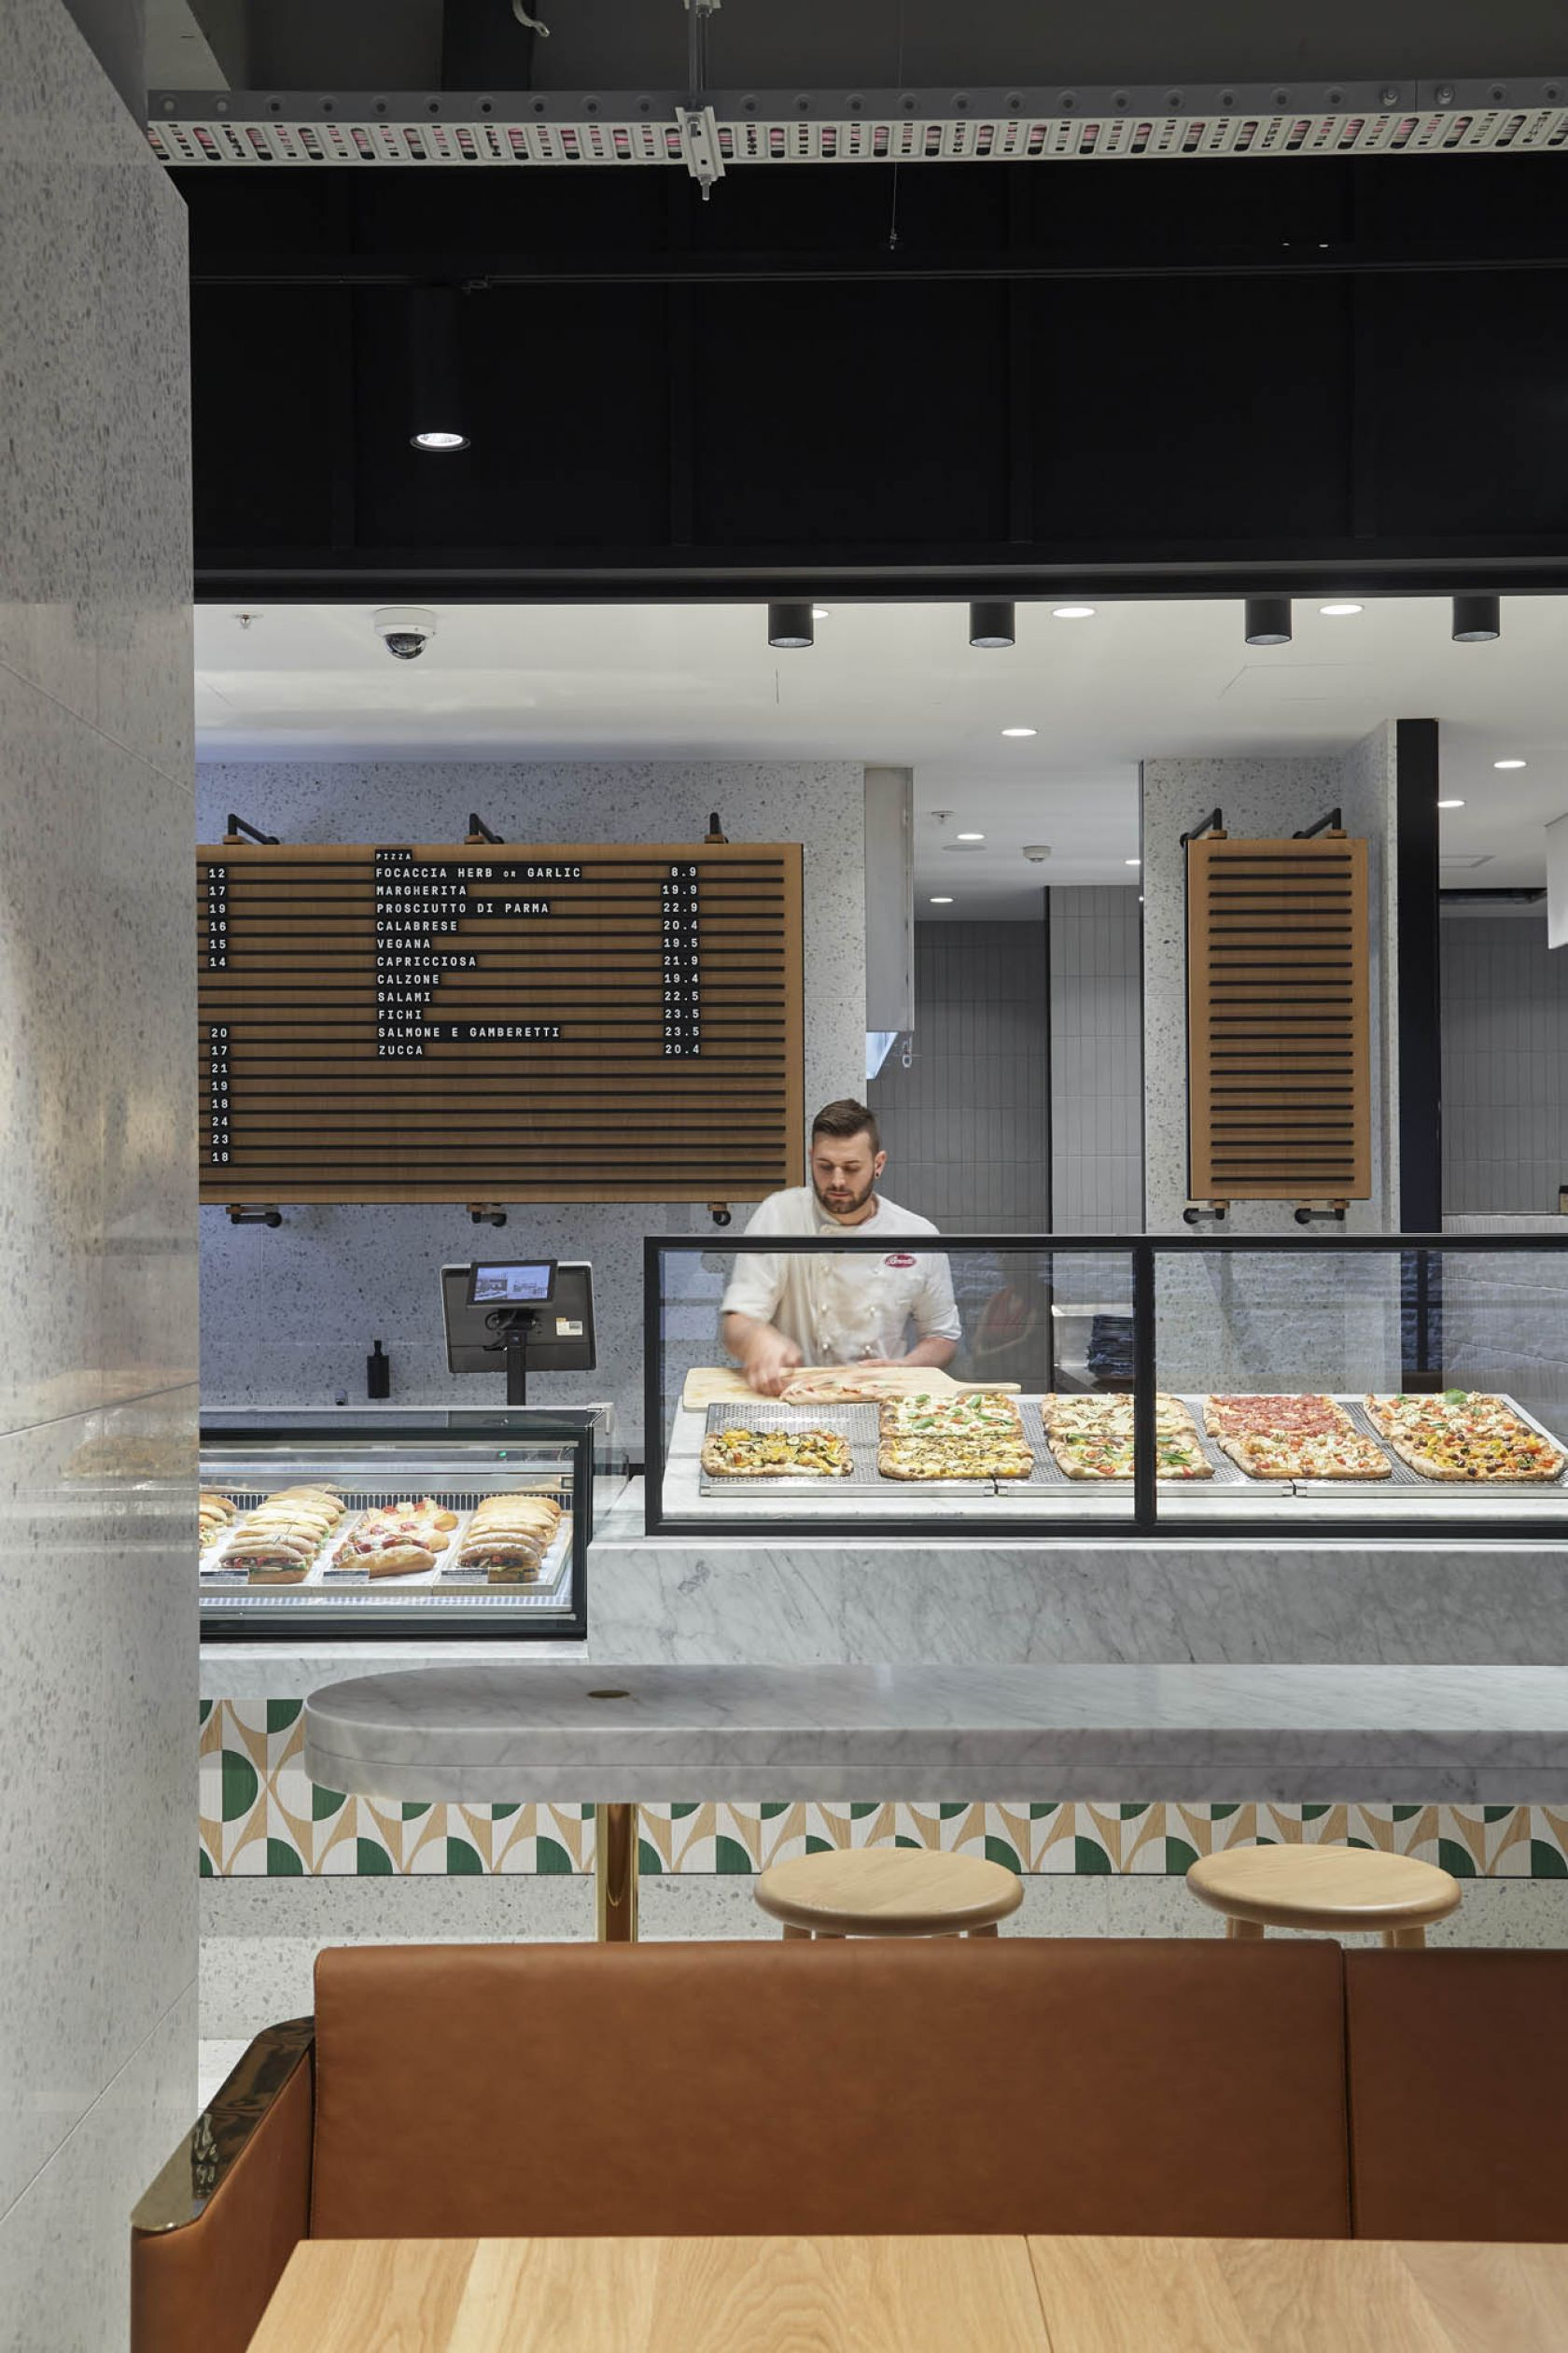 brunetti cafe emporium flinders lane hospitality demolition interior construction vic pizza making chef gourmet